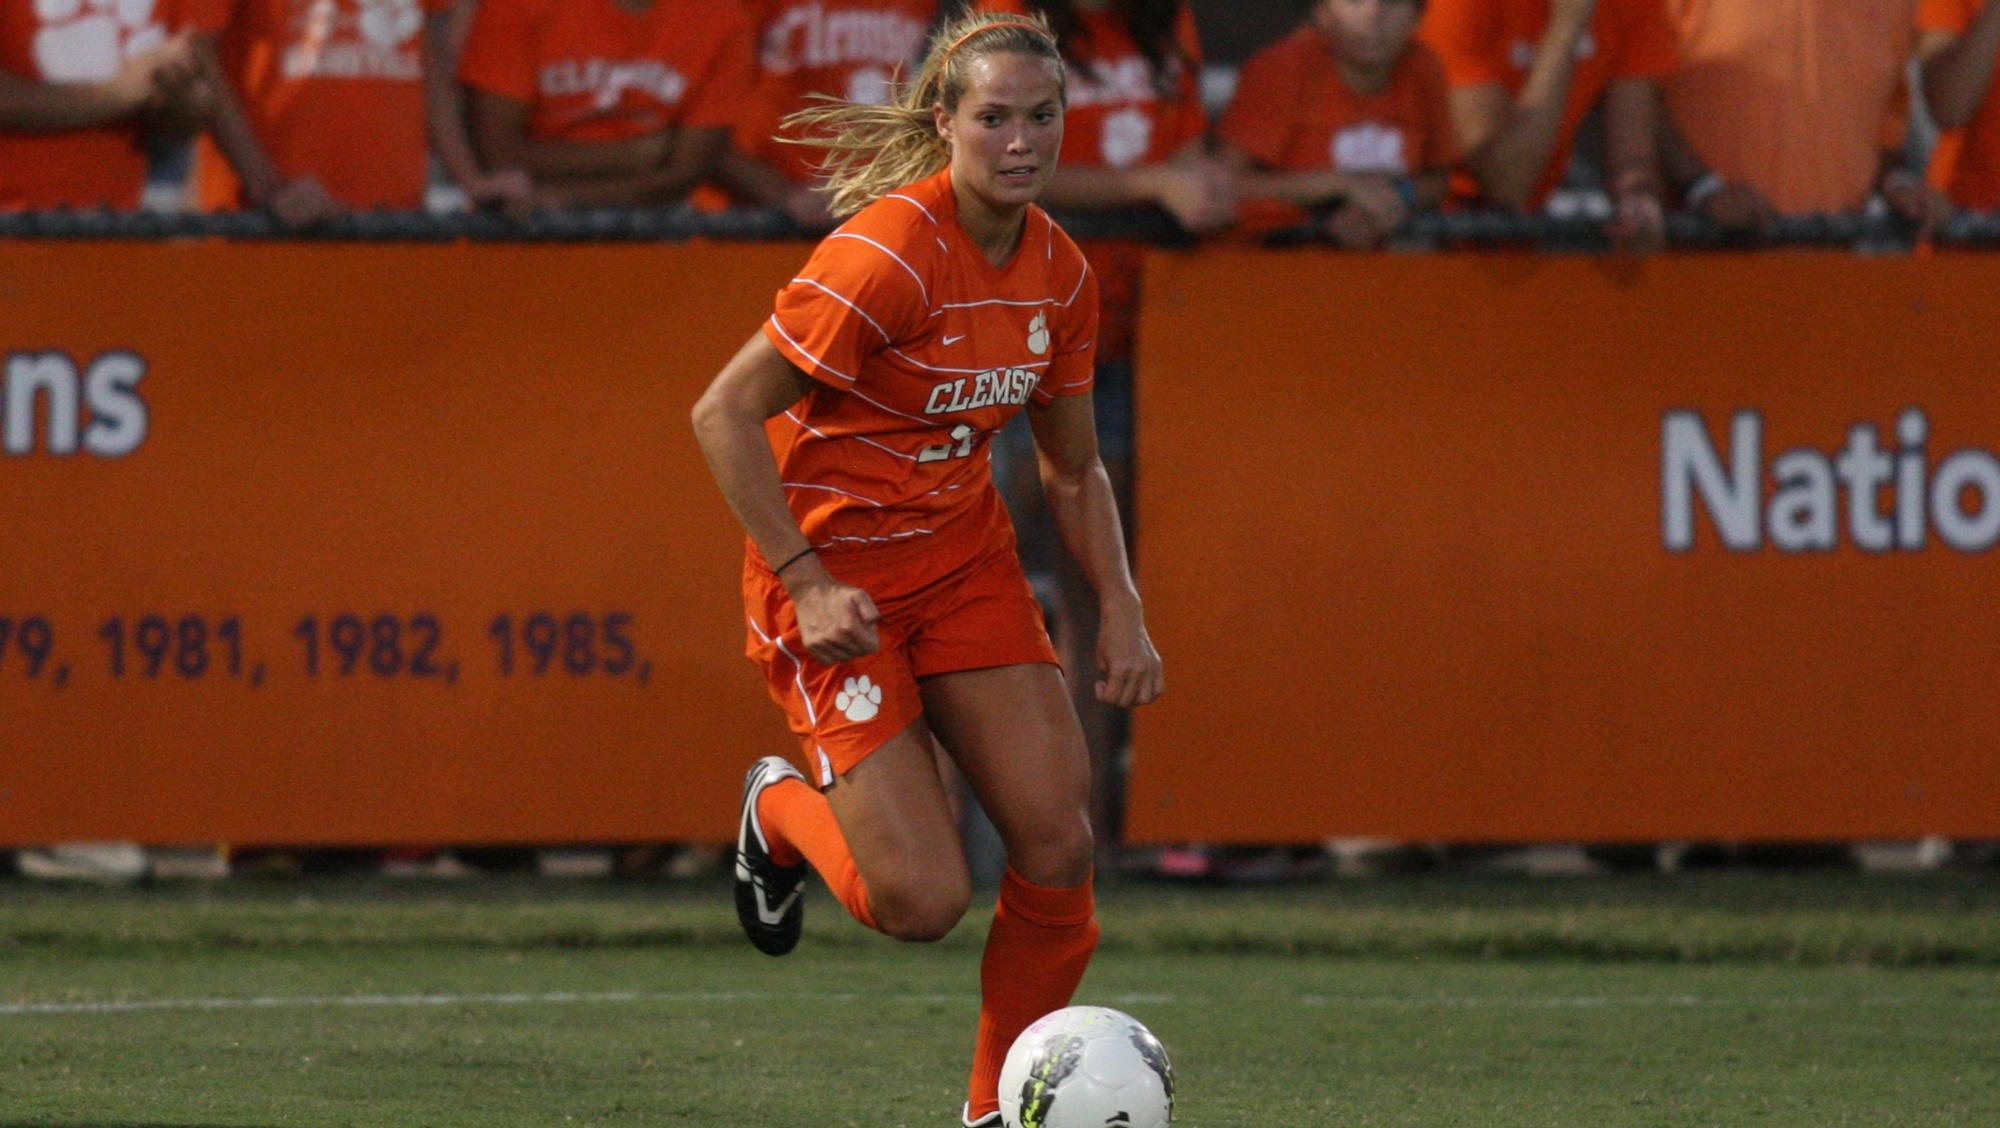 Clemson Women's Soccer Team to Play Host to Alabama in Exhibition Game Saturday